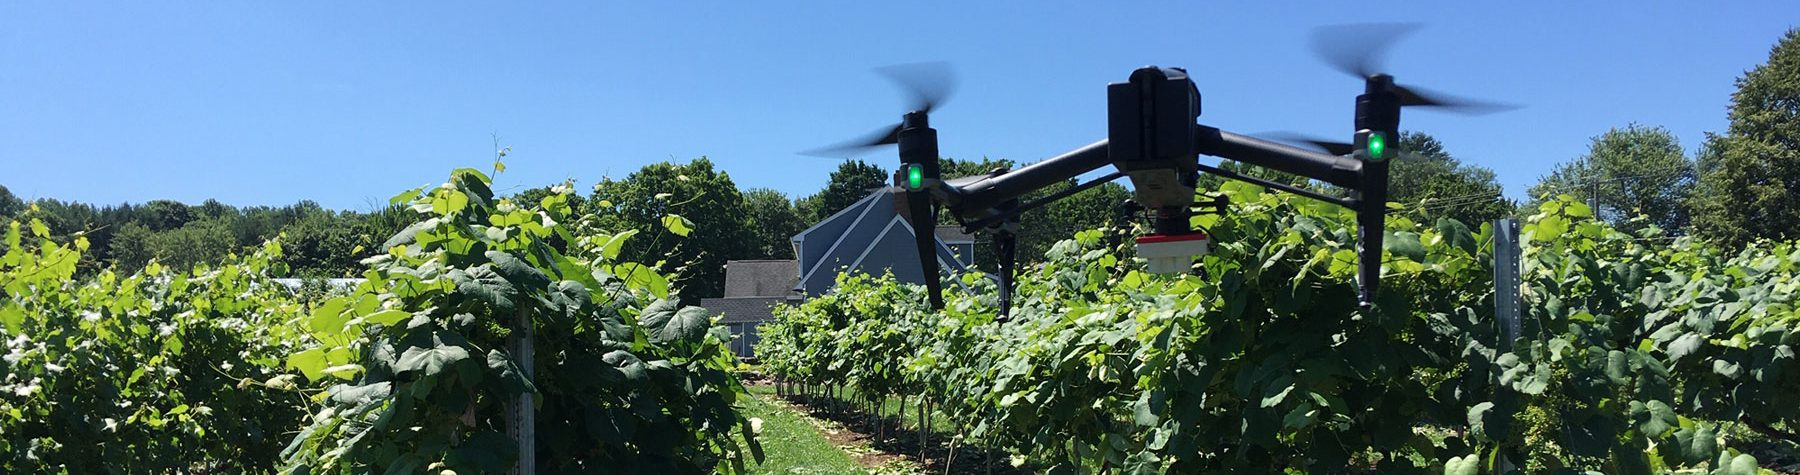 Remote Sensing Online Graduate Certificate: Image of Drone Flying within Agricultural Fields